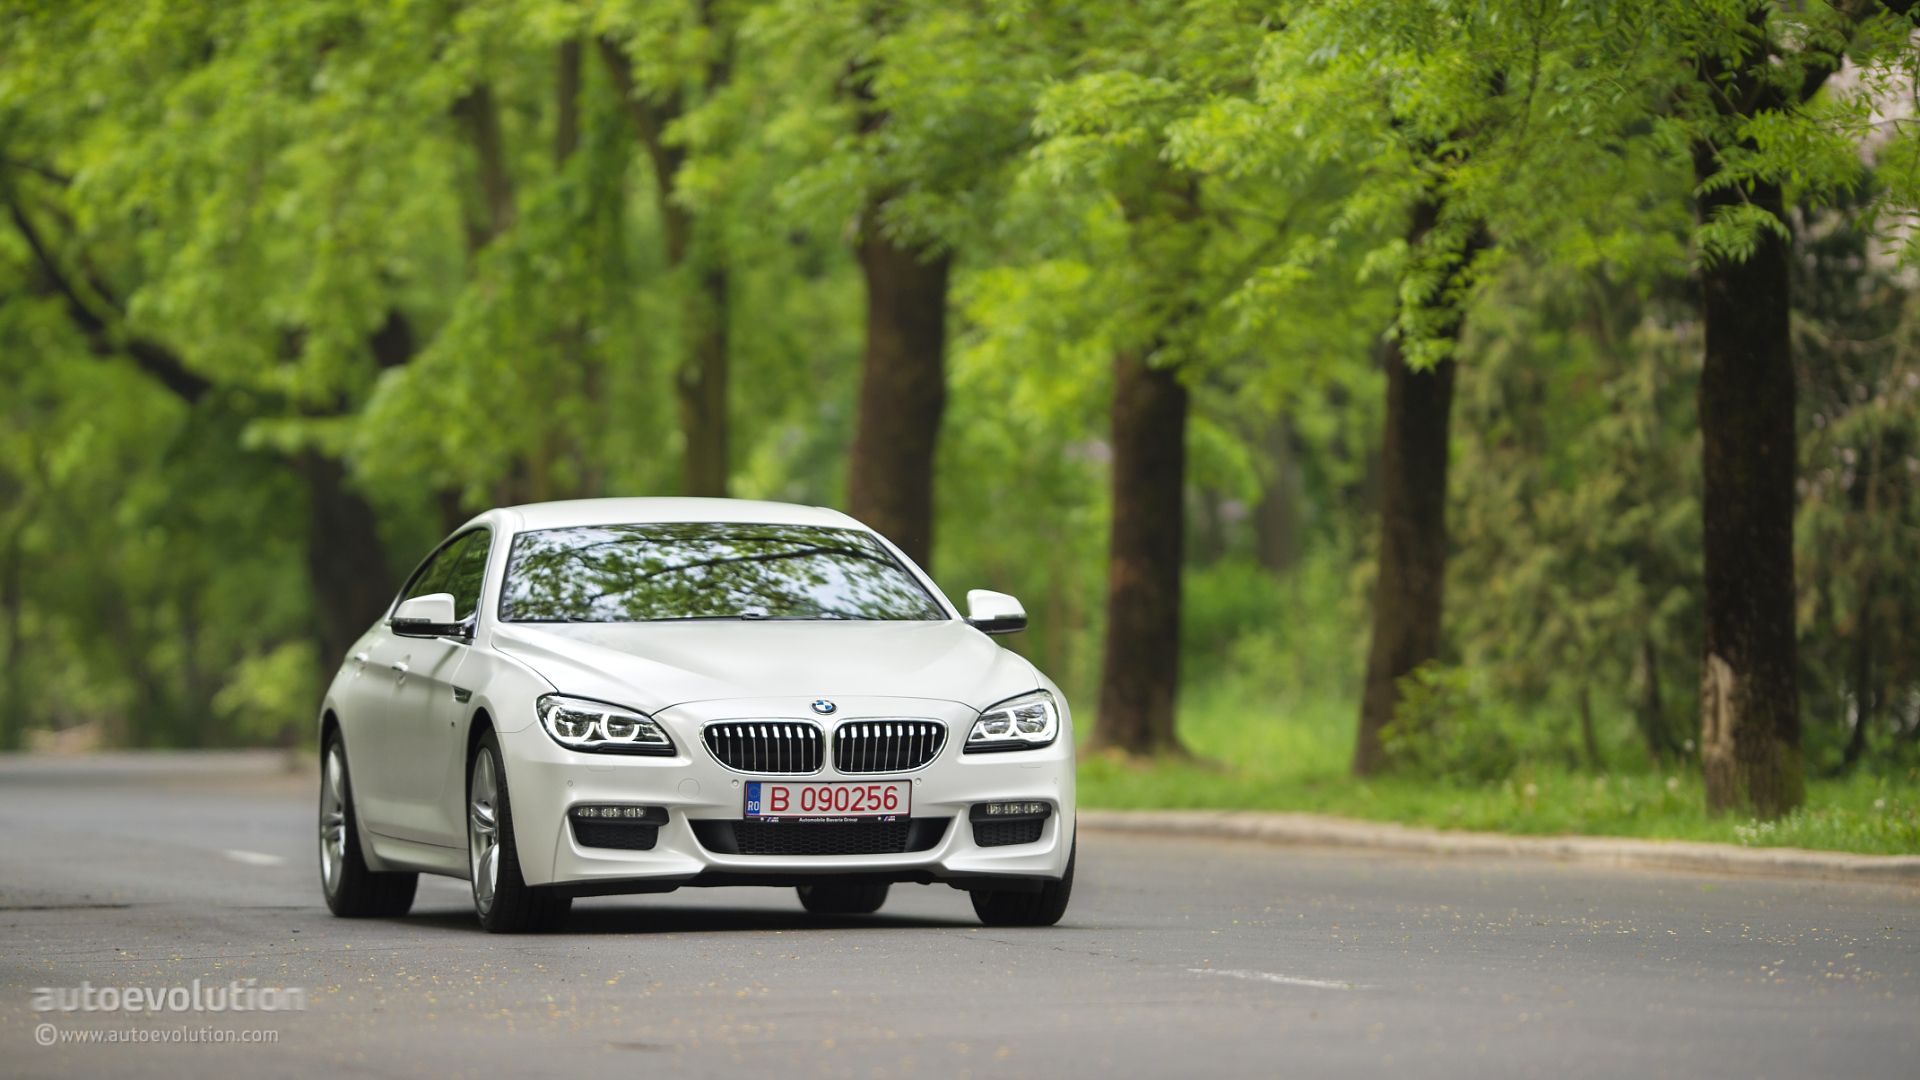 2016 Bmw 6 Series Gran Coupe Wallpapers Bring On The Frozen Paint Autoevolution